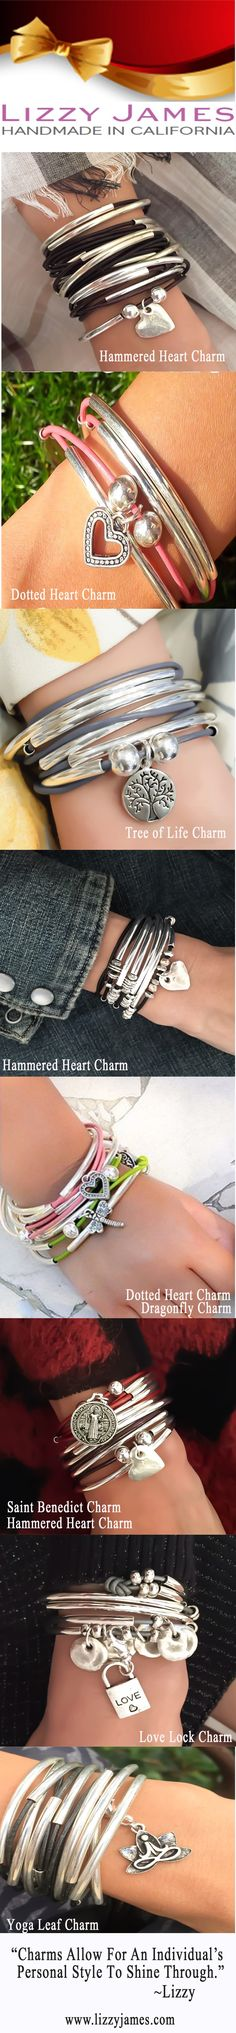 Lizzy James' wrap bracelets & necklaces have been designed with an individual's personal style in mind.  To accent that individual style, Lizzy has created a line of 100+ charms that can be added to any one of the wrap bracelets and necklaces.  Show your individual style with one or two or more of Lizzy James's charms!  Enjoy your personal charmed life!  #LizzyJamesInc